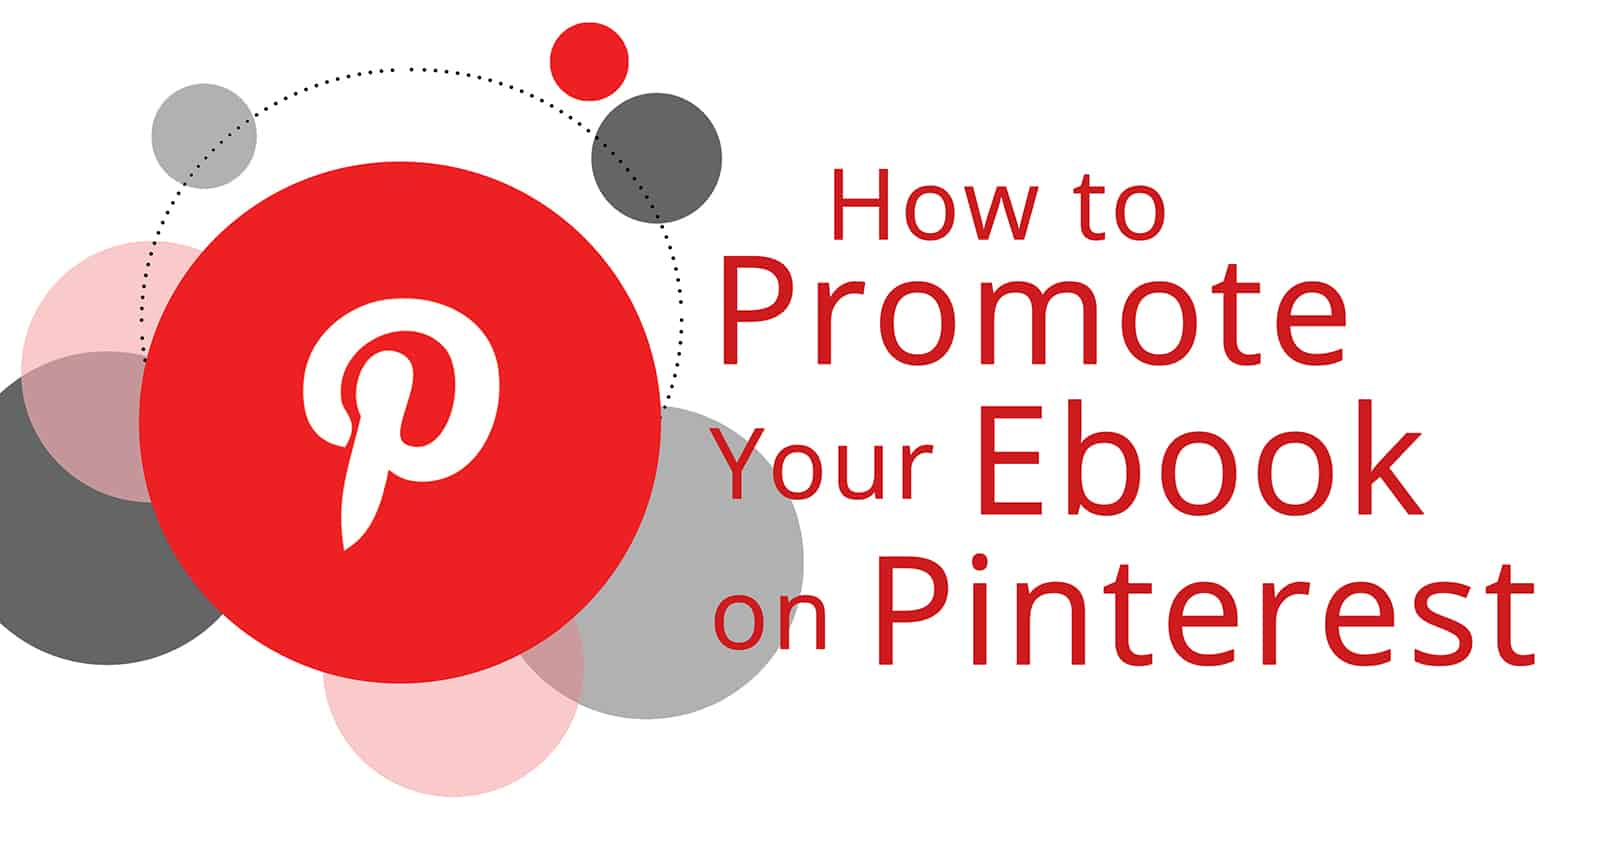 Promote Your Ebook on Pinterest